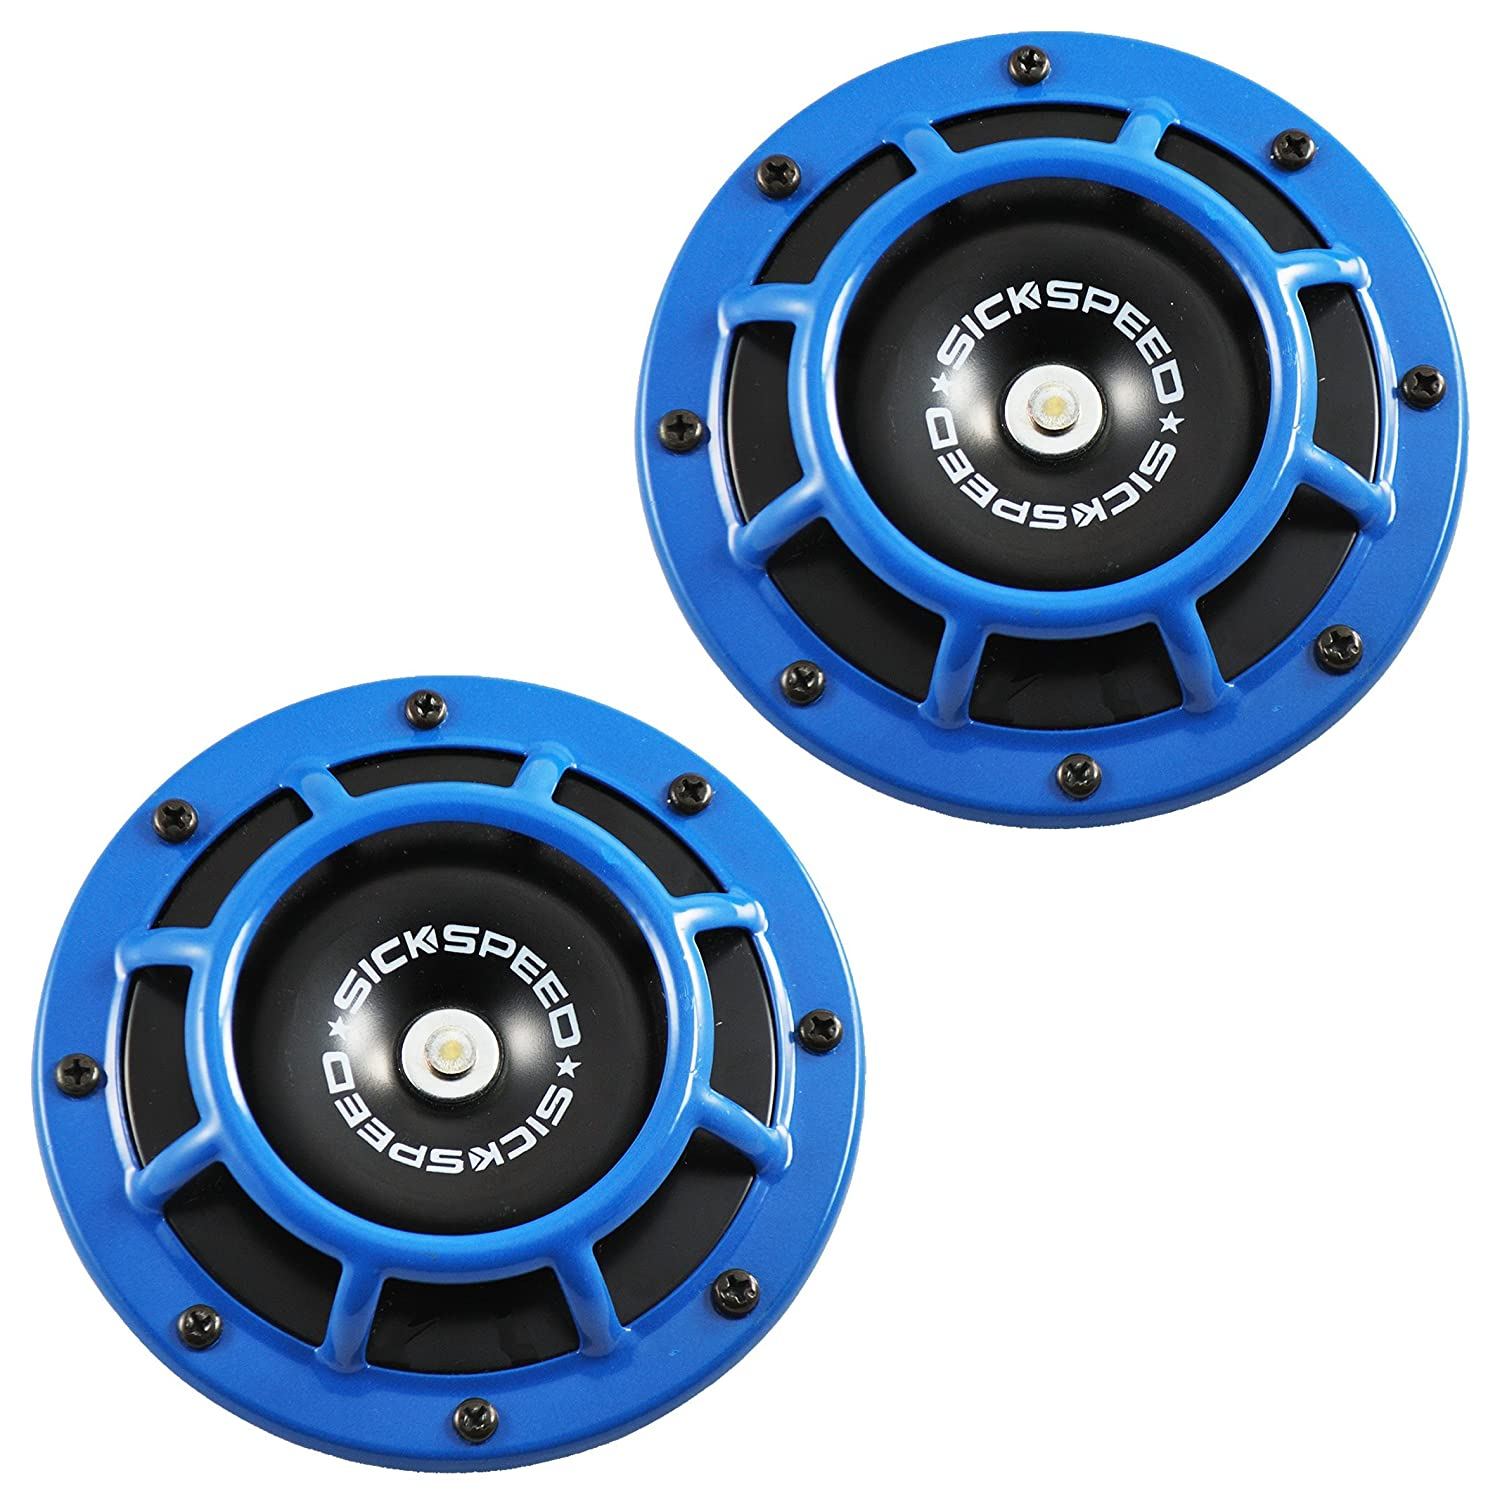 Sickspeed 2Pc Blue Super Loud Compact Electric Blast Tone Horn for Car//Truck//SUV 12V P3 for Porsche Panamera